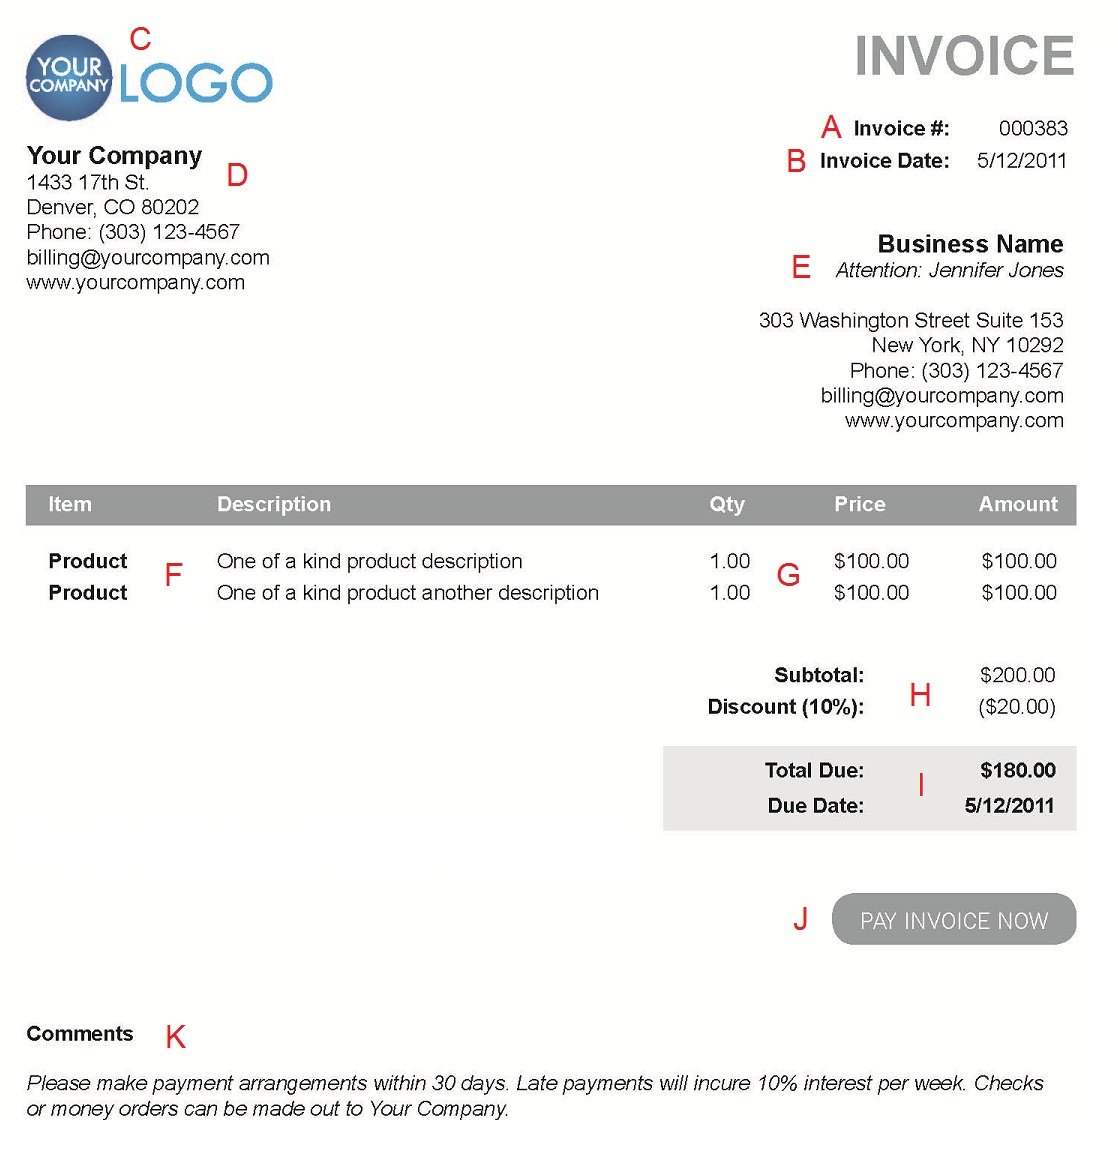 Coolmathgamesus  Surprising The  Different Sections Of An Electronic Payment Invoice With Inspiring A  With Breathtaking Epson Thermal Receipt Printers Also Lic Payment Receipt In Addition Acknowledgement Receipt Of Payment Template And Sample Of Acknowledgement Letter Of Receipt As Well As Receipts And Payments Accounts Additionally Garage Receipt Template From Paysimplecom With Coolmathgamesus  Inspiring The  Different Sections Of An Electronic Payment Invoice With Breathtaking A  And Surprising Epson Thermal Receipt Printers Also Lic Payment Receipt In Addition Acknowledgement Receipt Of Payment Template From Paysimplecom